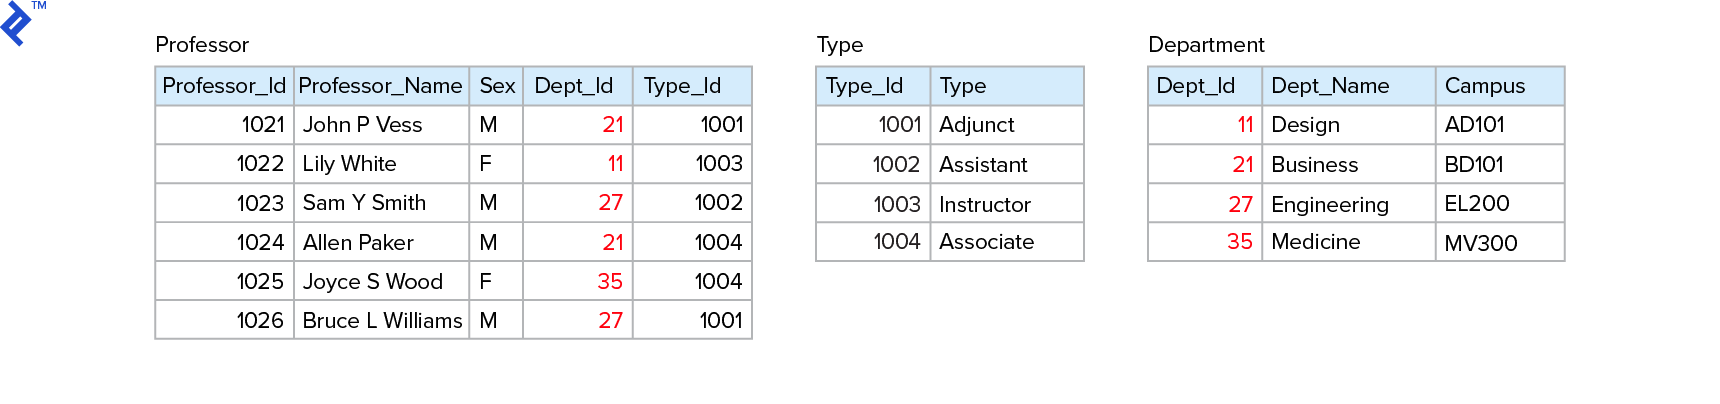 Extending the model to 3NF by adding Type and Department tables.